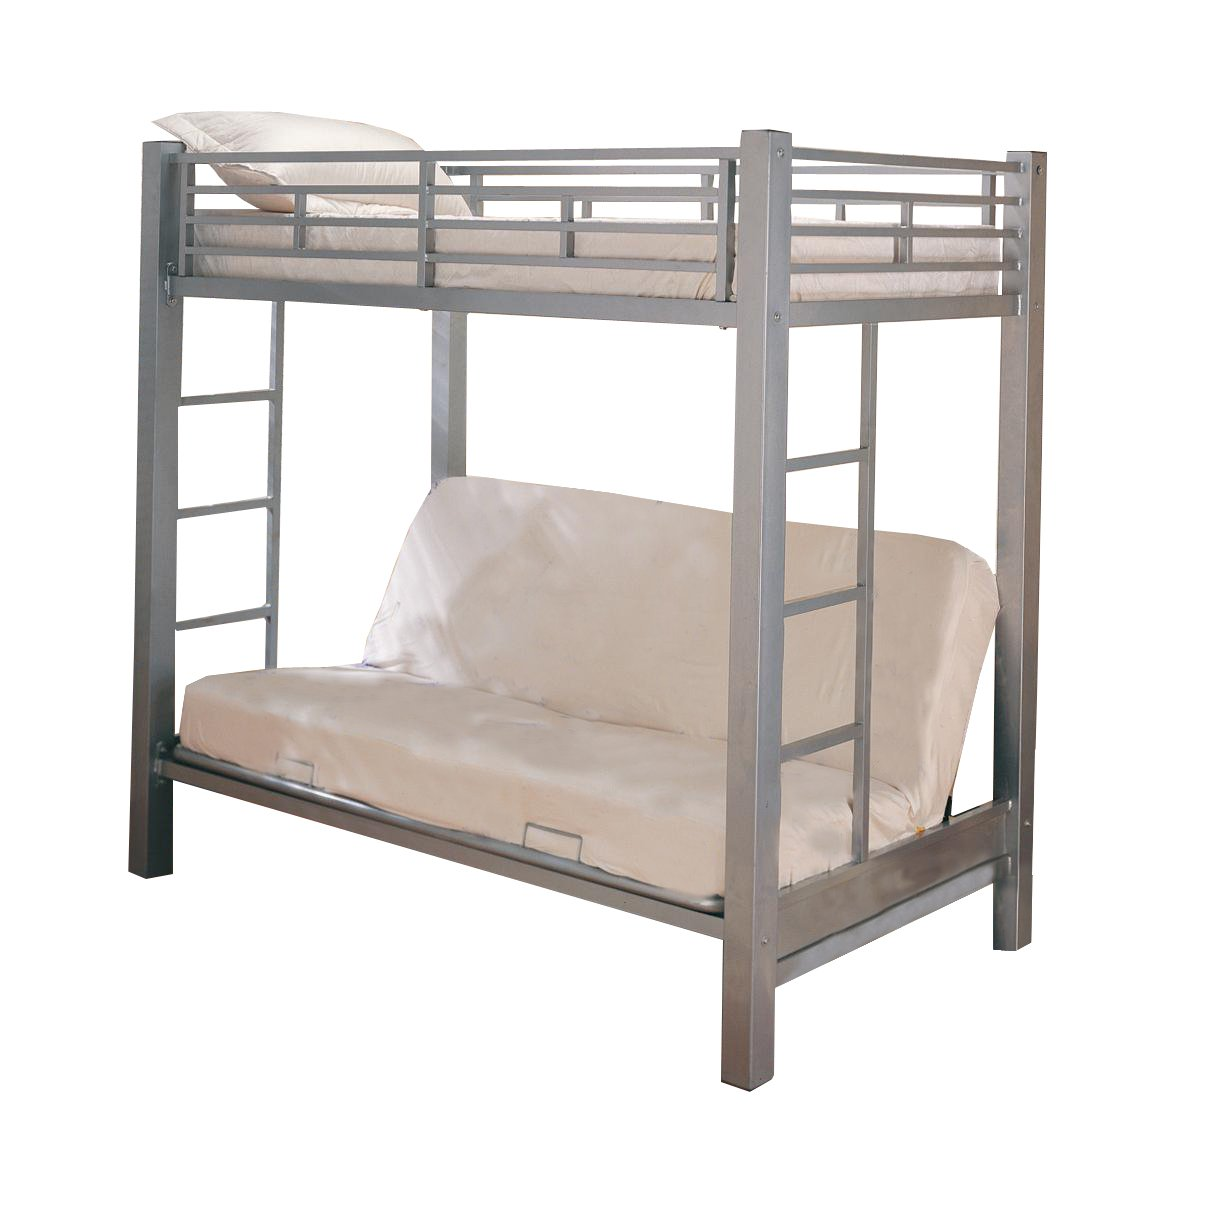 Amazon.com: Home Source Industries 13017 Bunk Bed with Convertible Sofa to  Full Sized Bed, Silver: Kitchen & Dining - Amazon.com: Home Source Industries 13017 Bunk Bed With Convertible